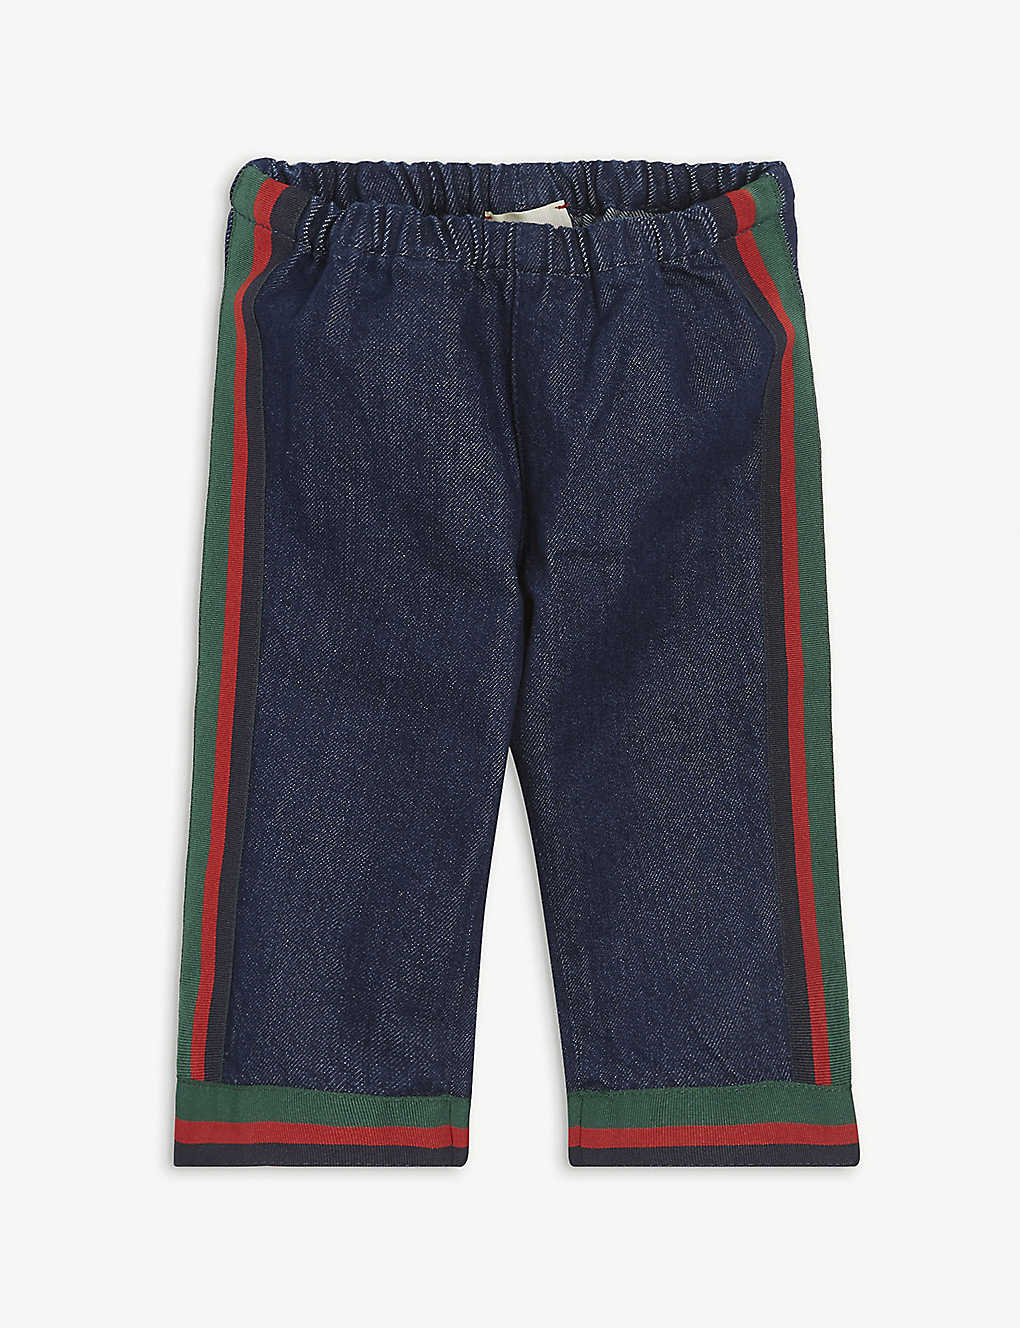 GUCCI: Web stripe cotton jeans 12-24 months